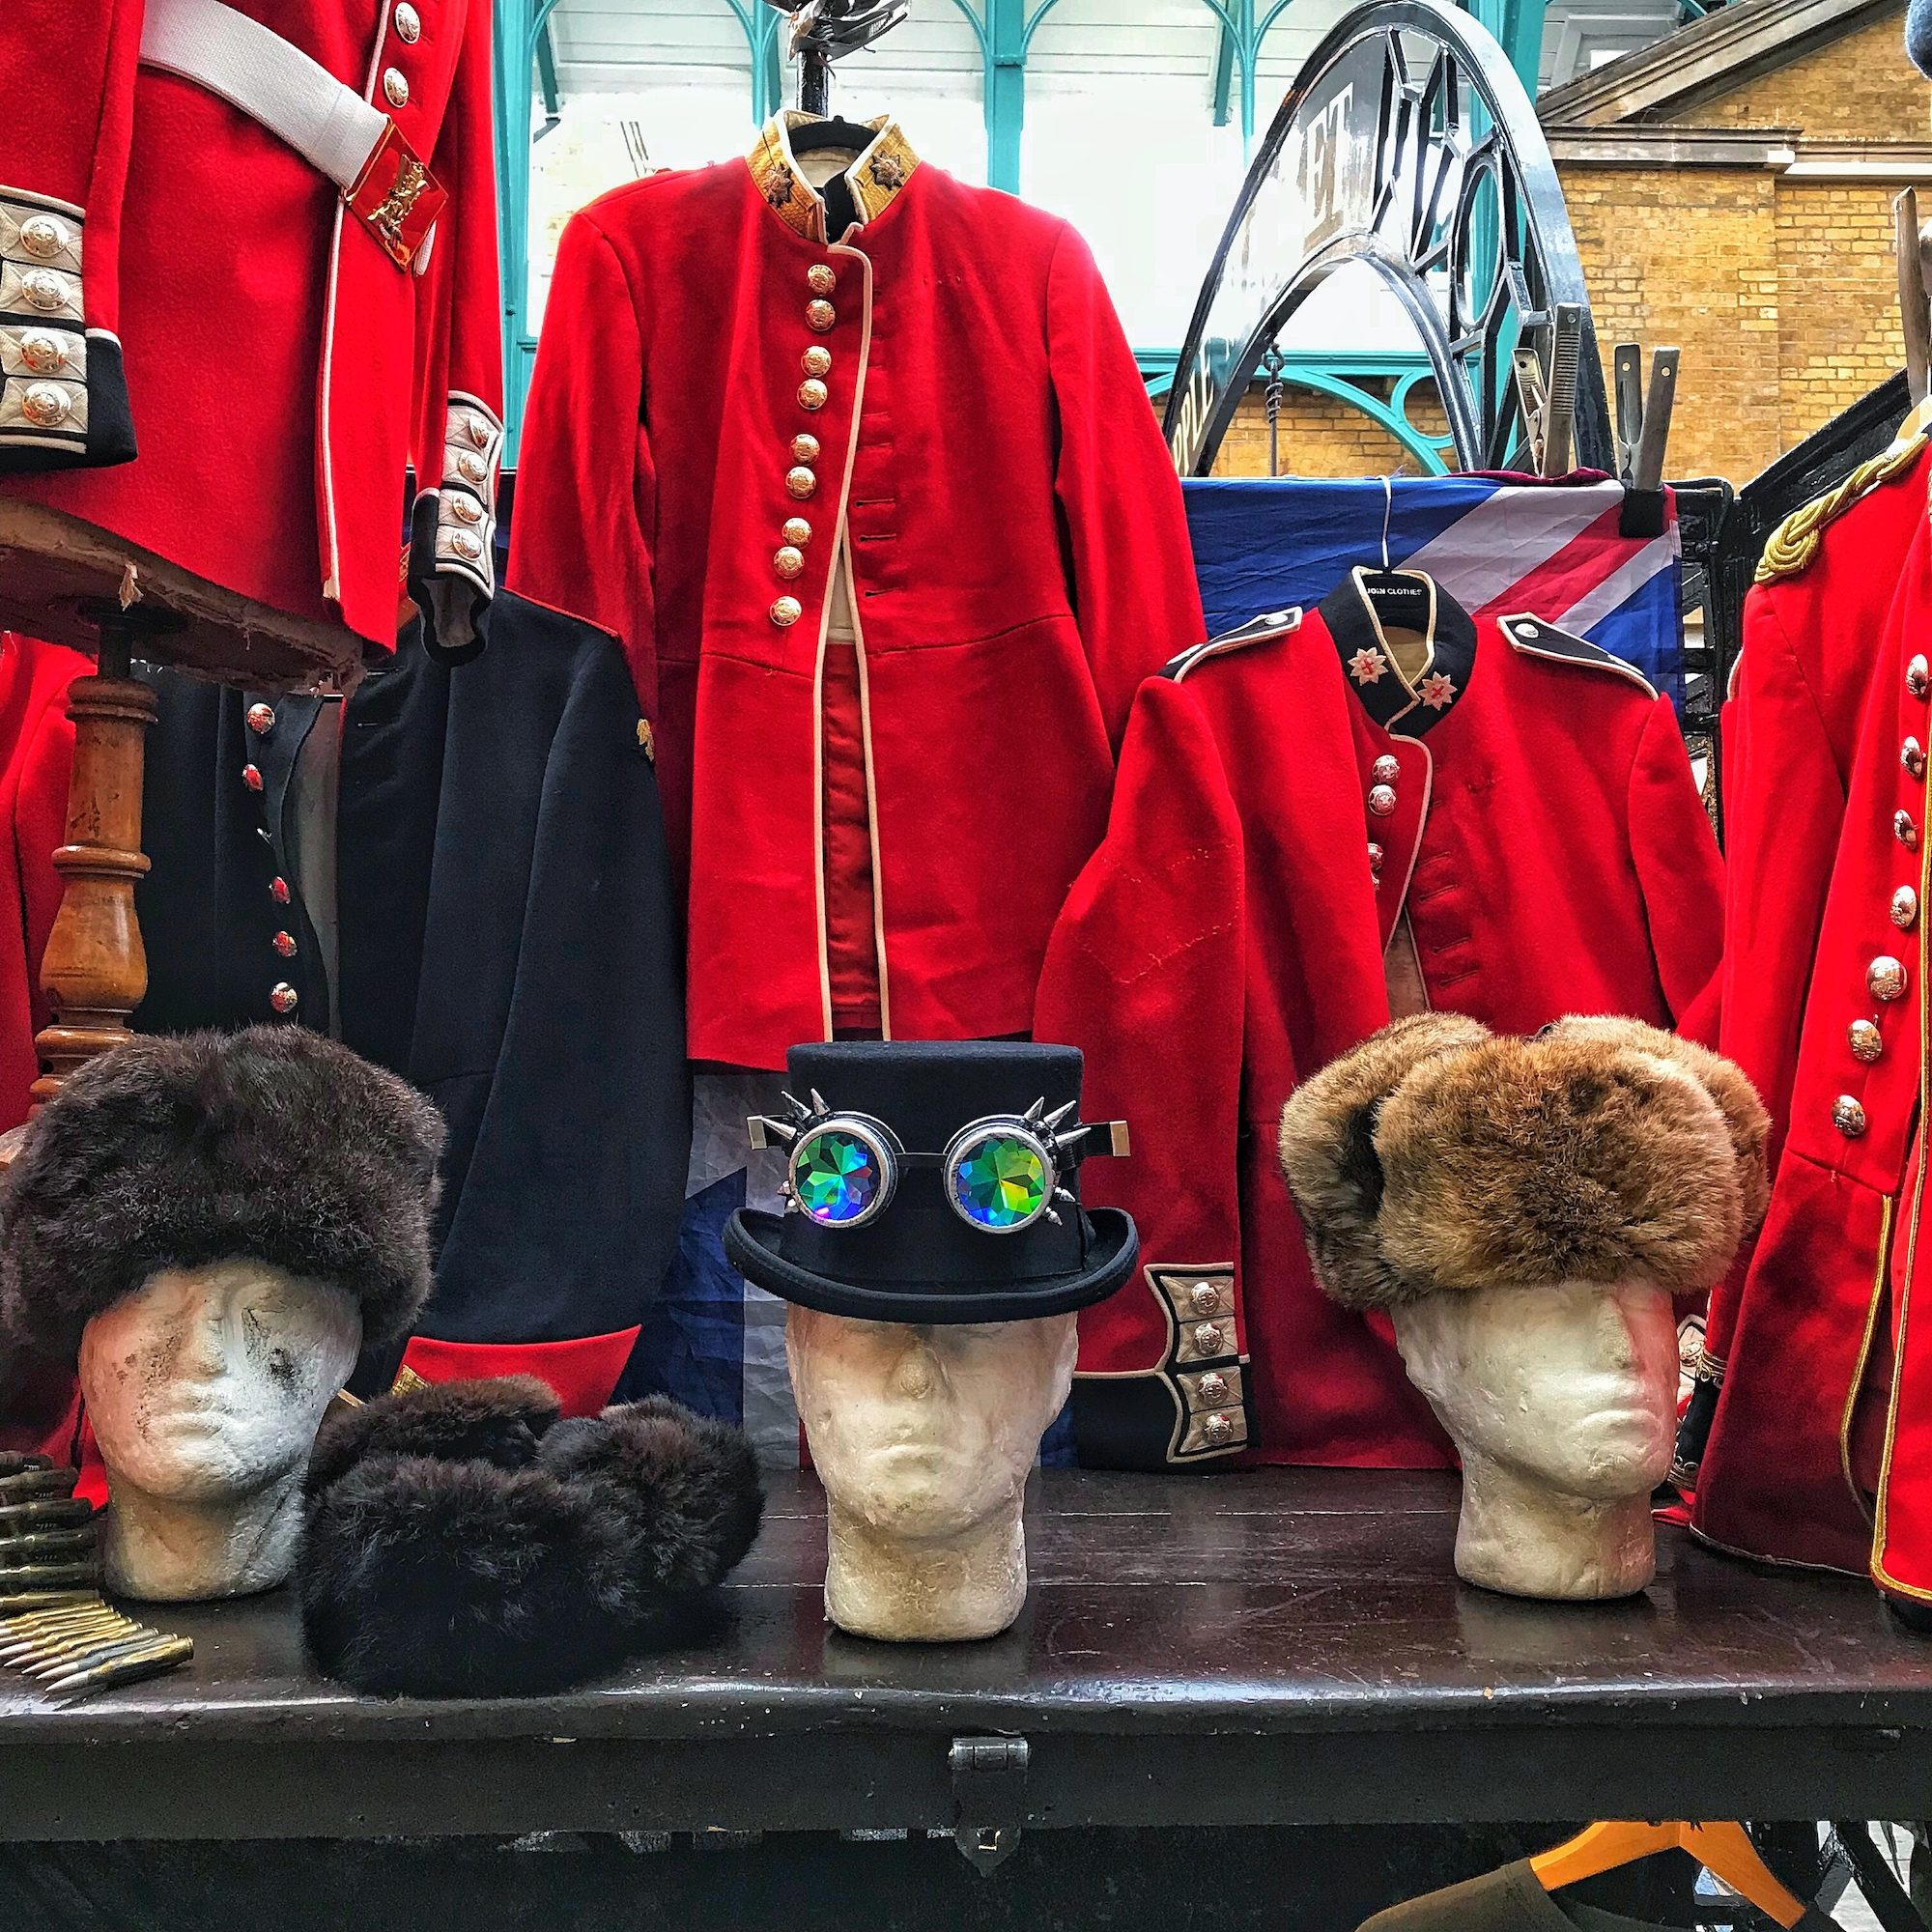 Soliders Uniforms at Covent Garden - A Broad In London.jpeg